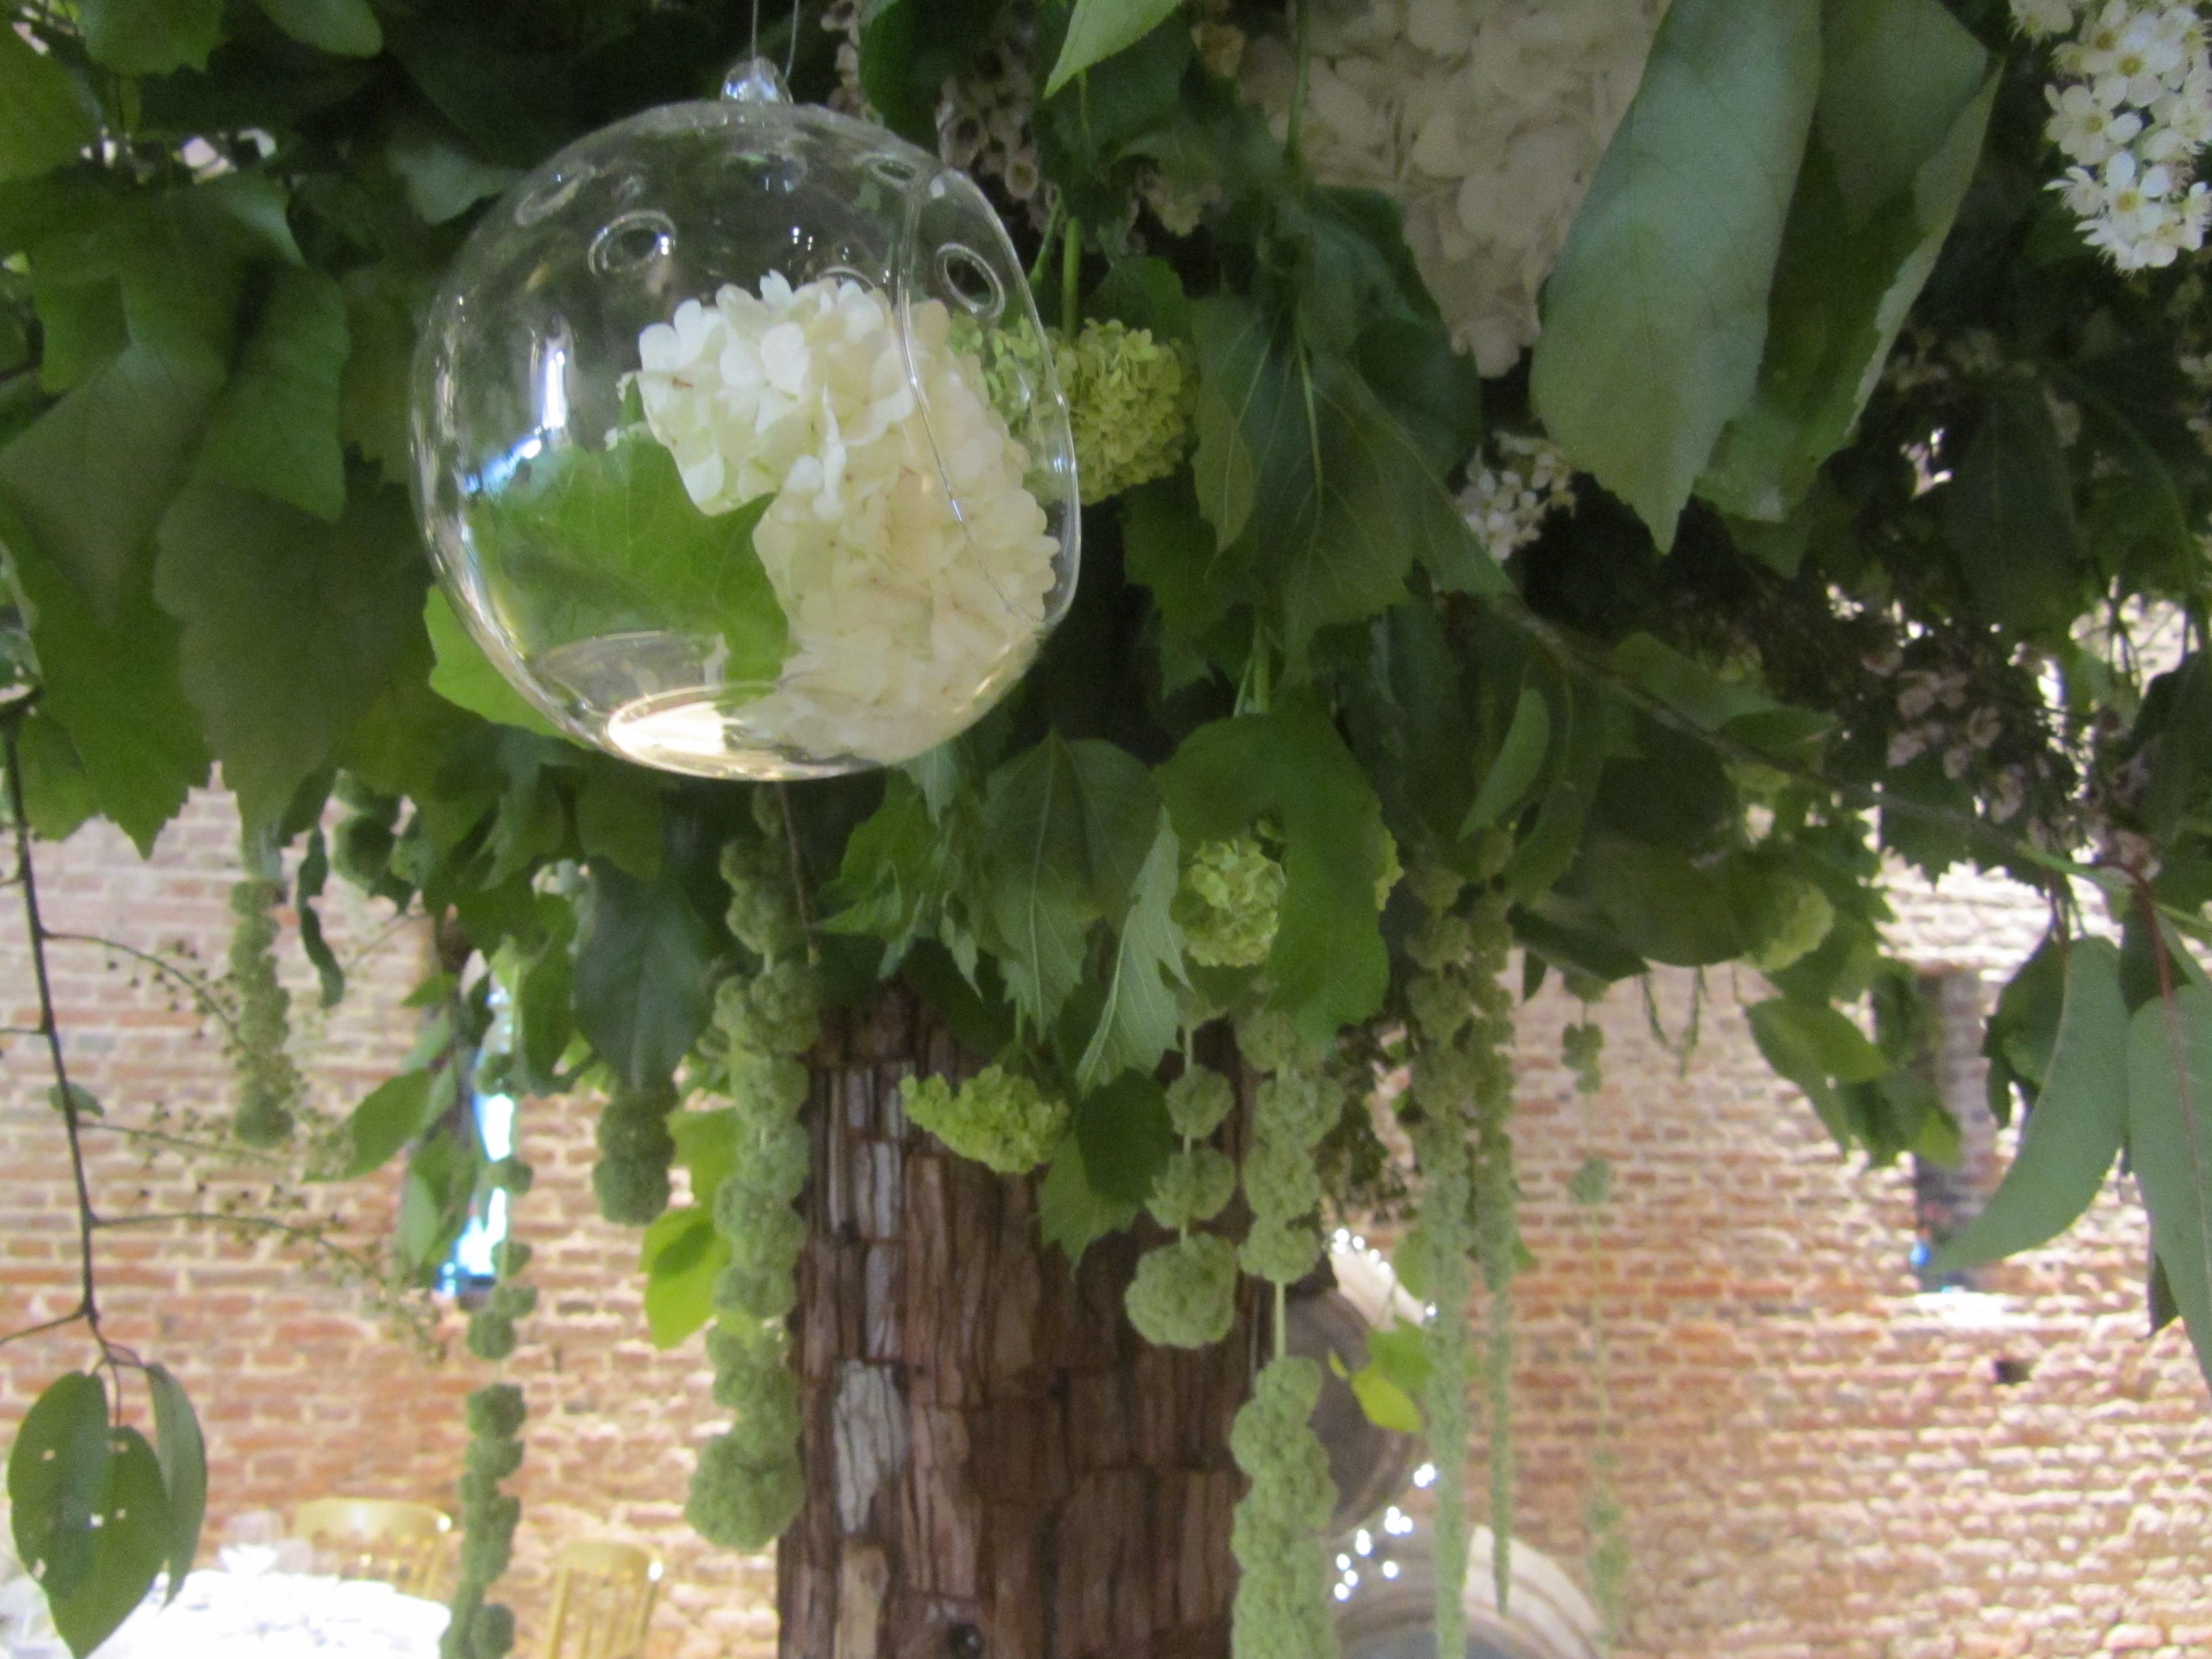 Dotted around the giant tree were little hanging balls with blossom inside.